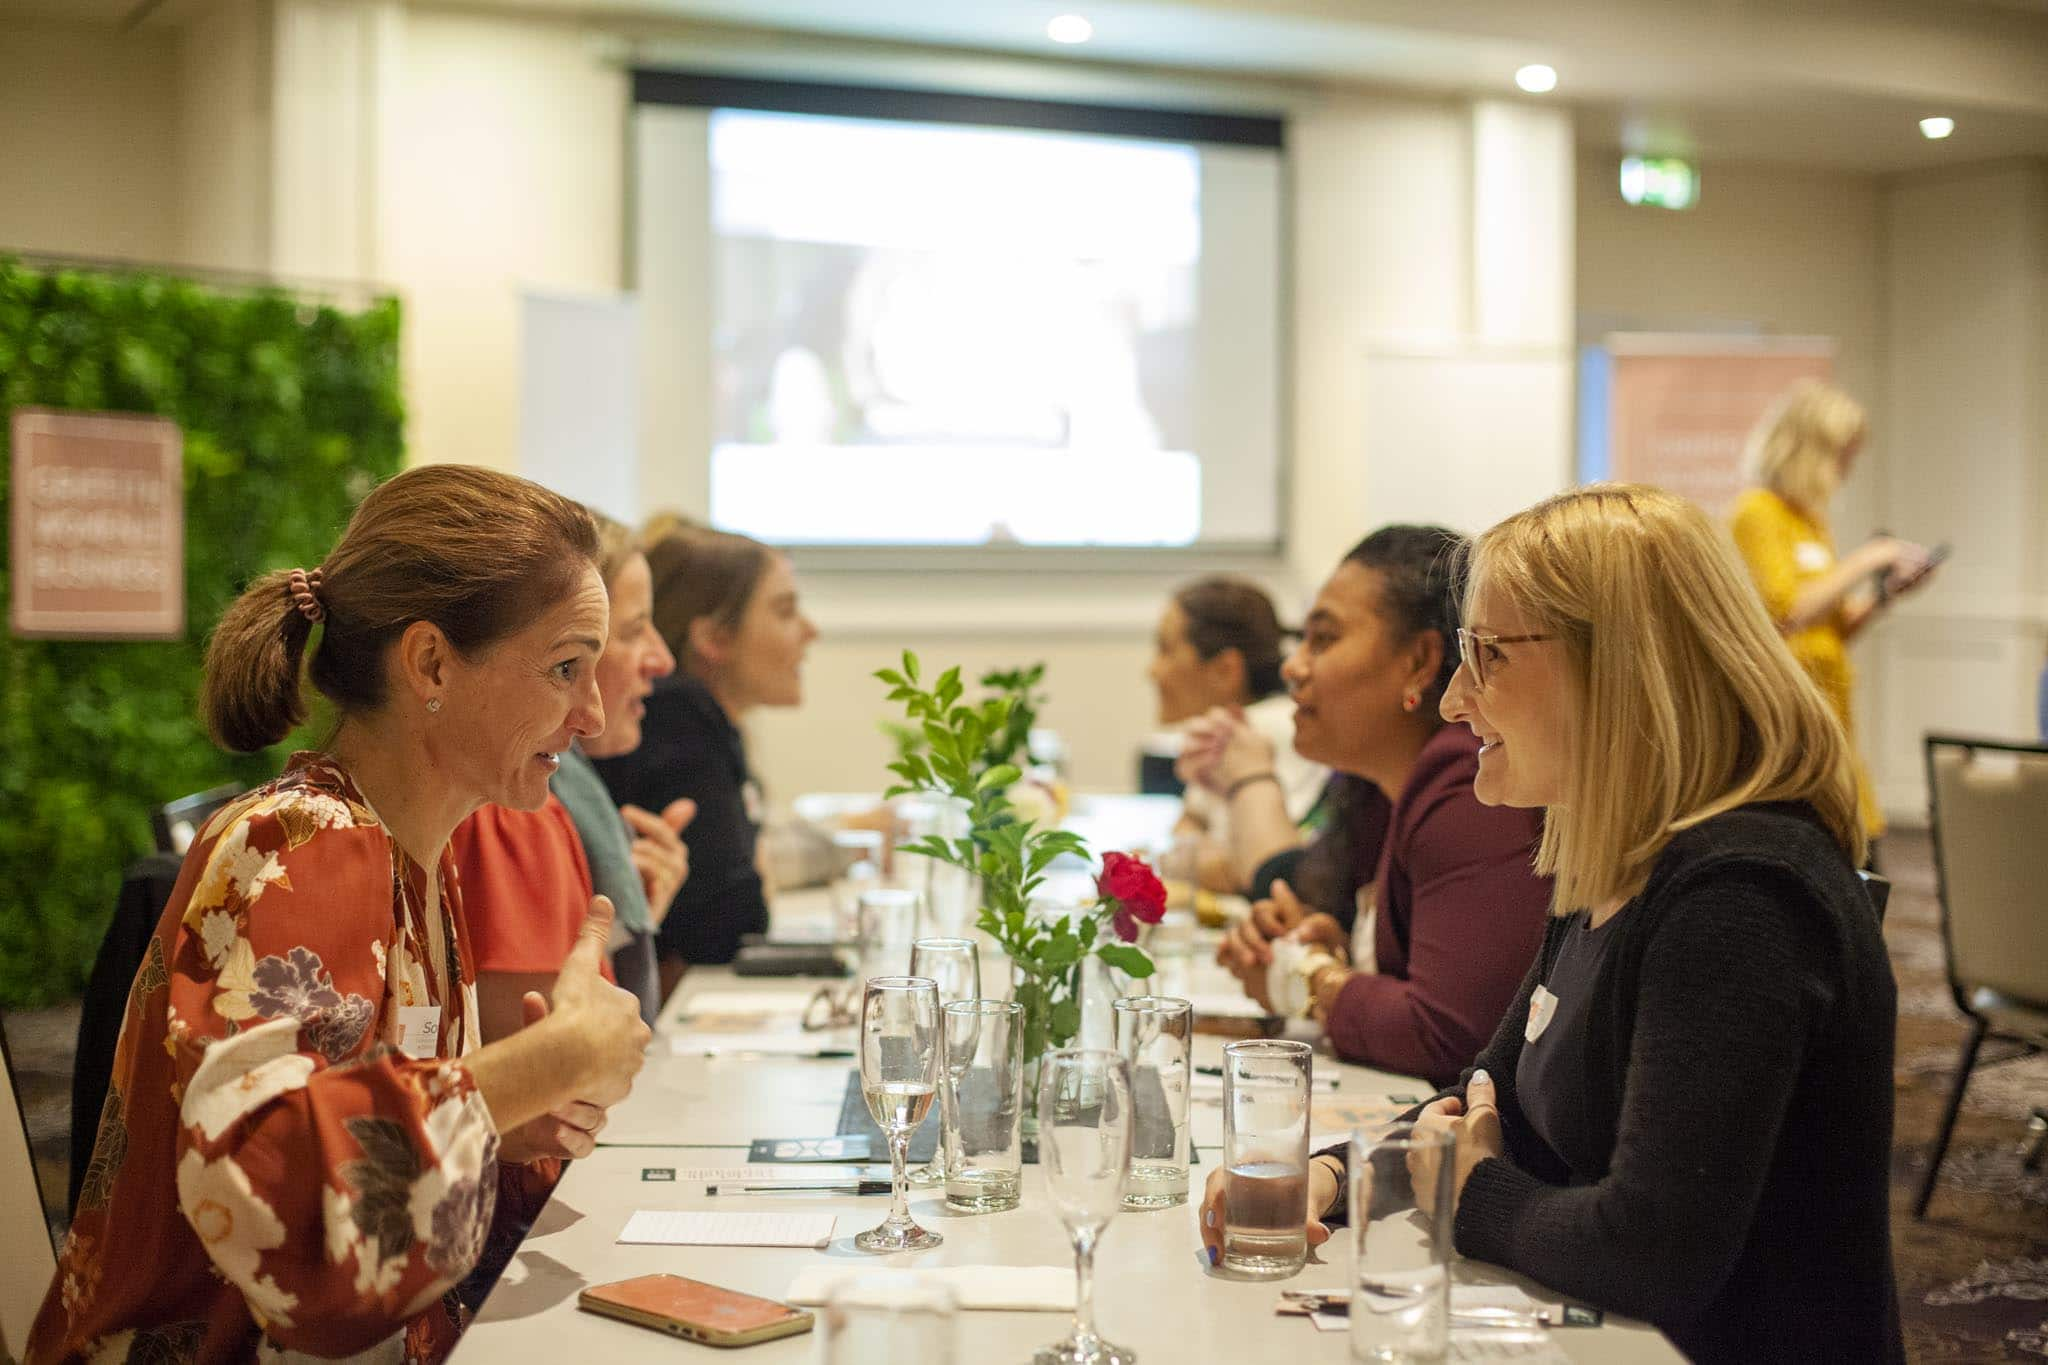 Speed Networking & New Program Launch - https://www.griffithwomeninbusiness.org/wp-content/uploads/2021/06/GWIB-Speed-Networking-2021-IMG_0911-2048px.jpg